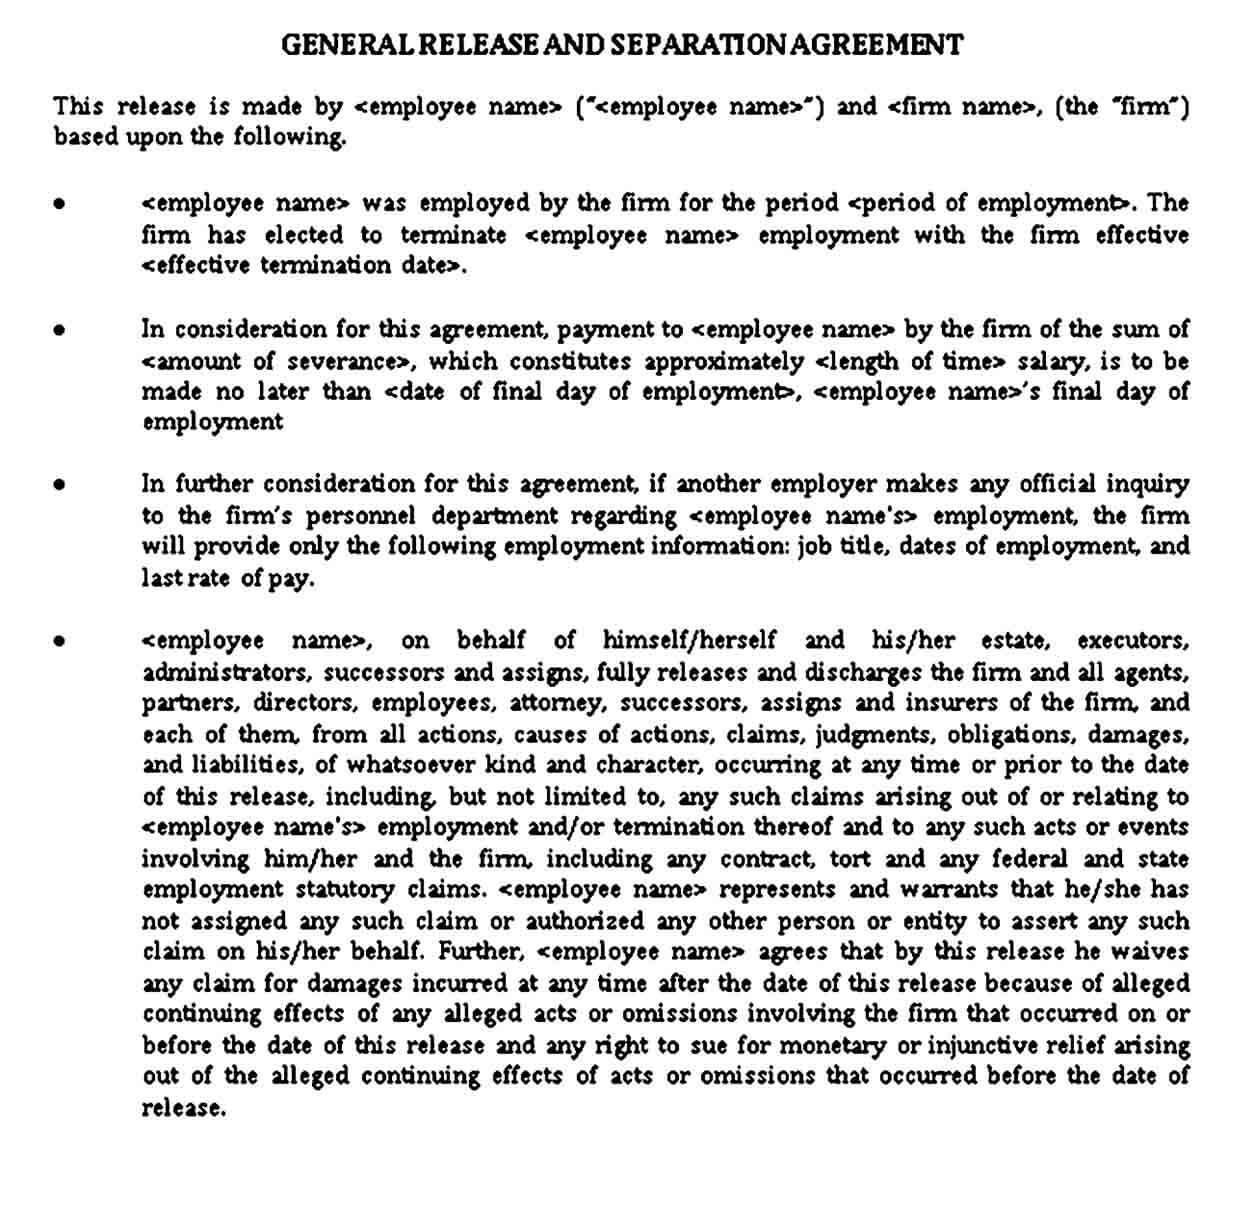 General Release and Separation Agreement